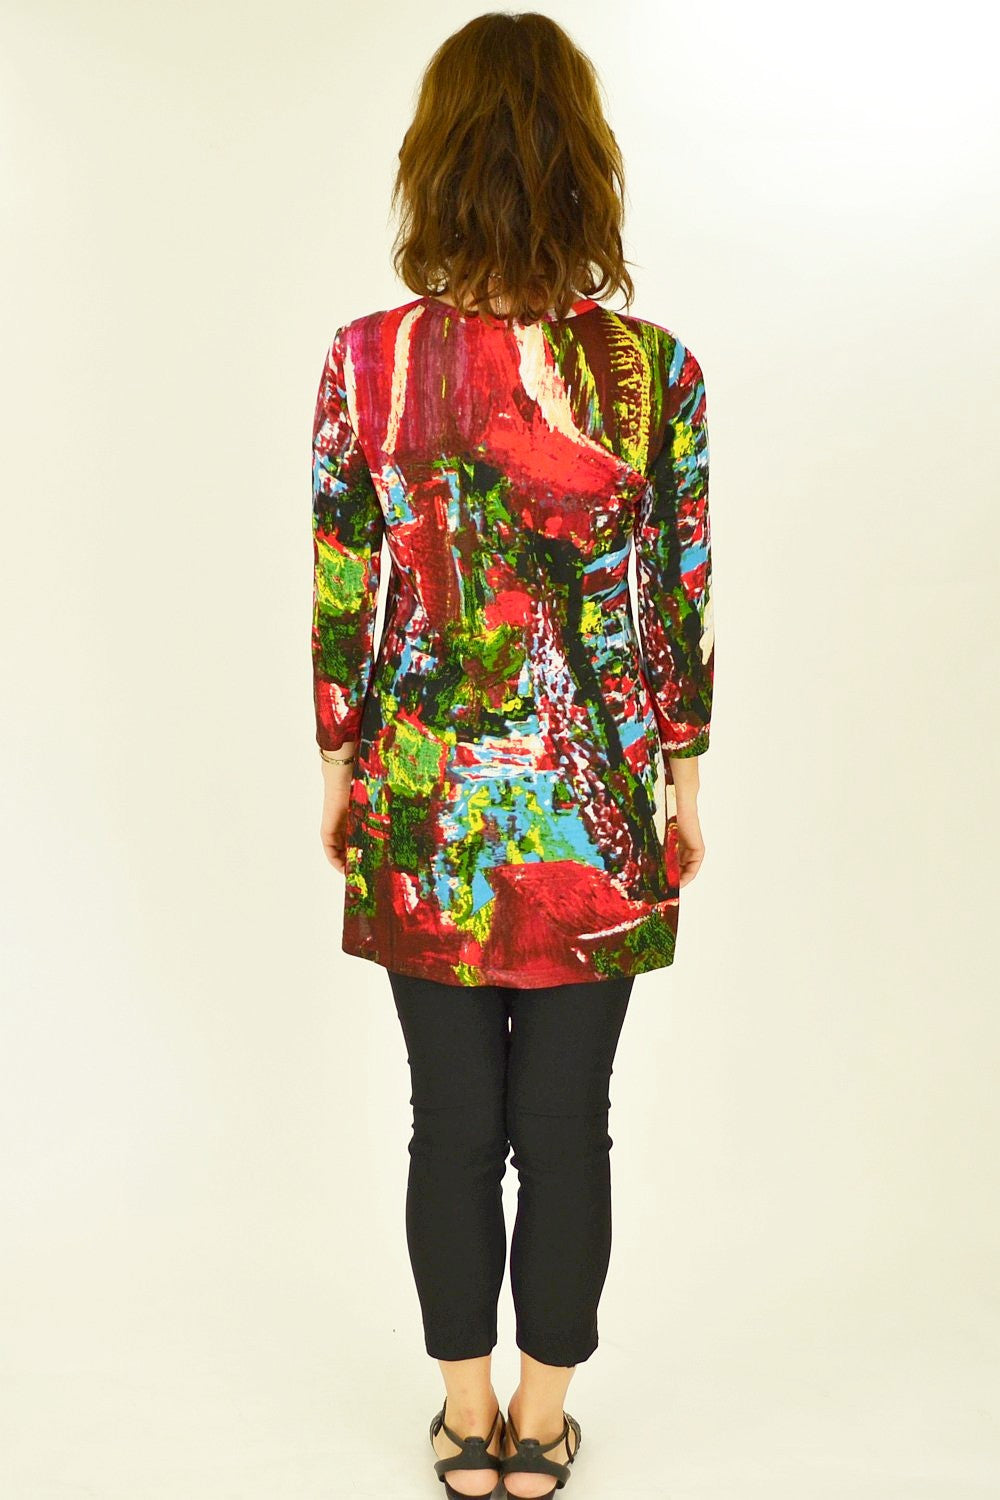 Ram Red Tunic Top - at I Love Tunics @ www.ilovetunics.com = Number One! Tunics Destination